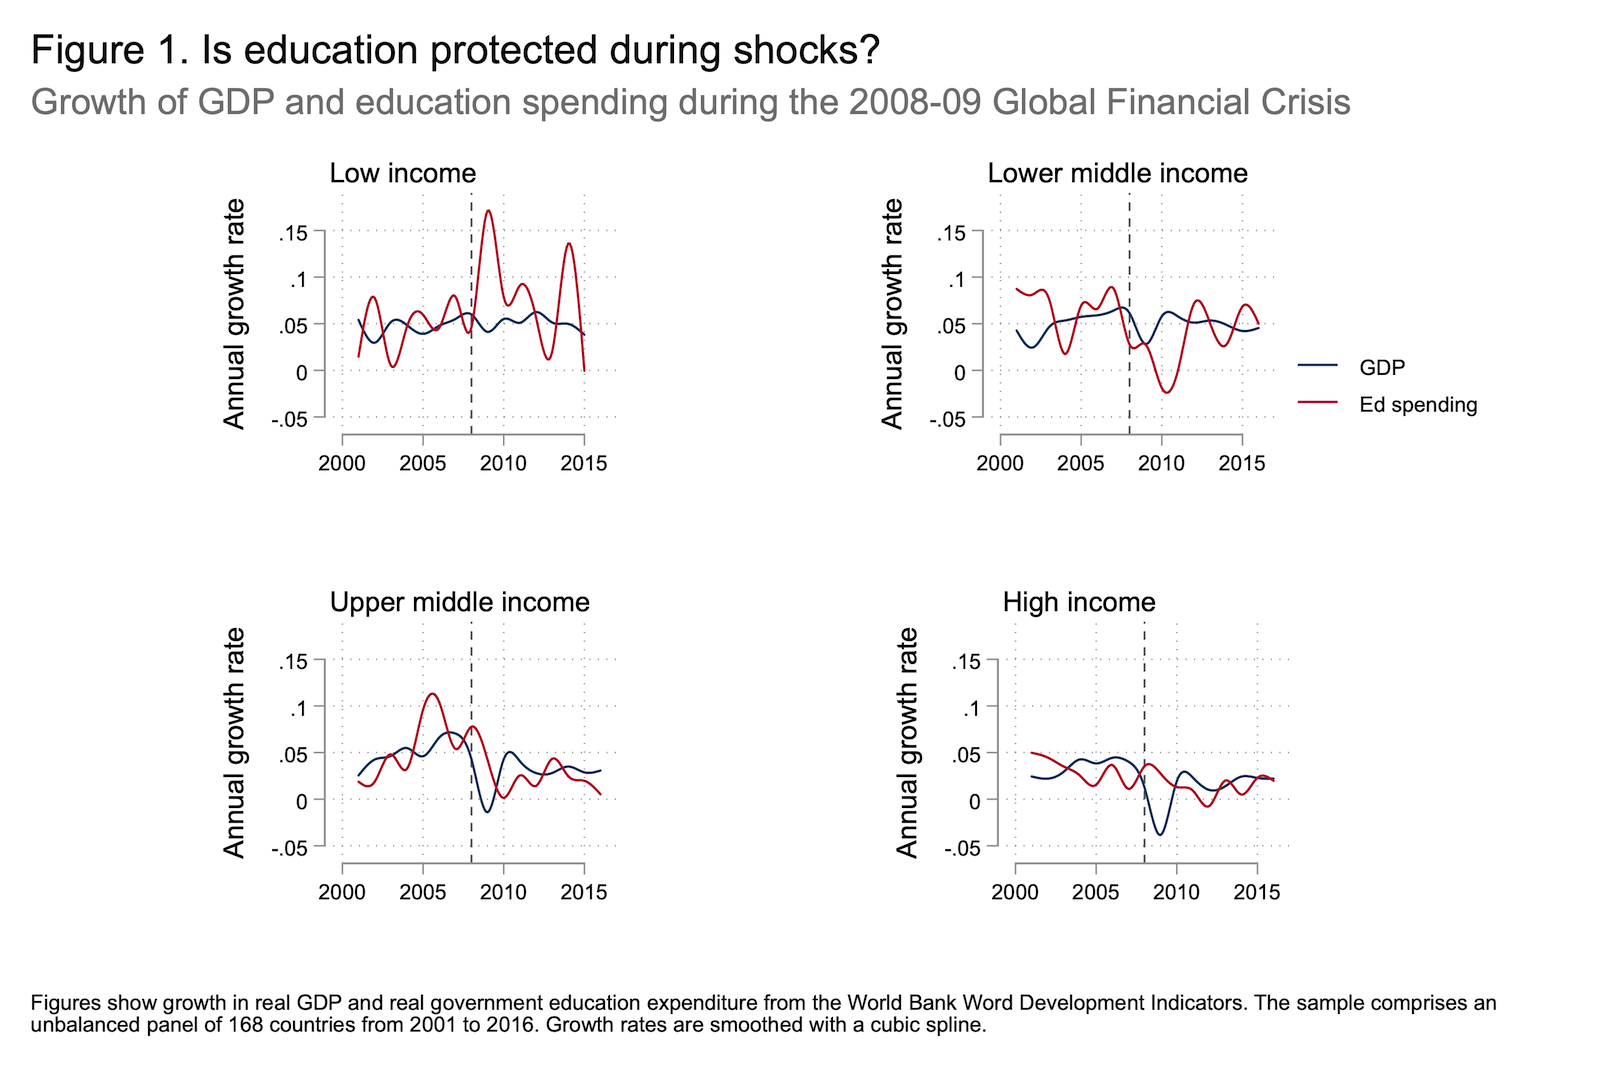 Chart showing lower-middle-income countries saw significant dips in education spending after the financial crisis, while high-income countries did not.